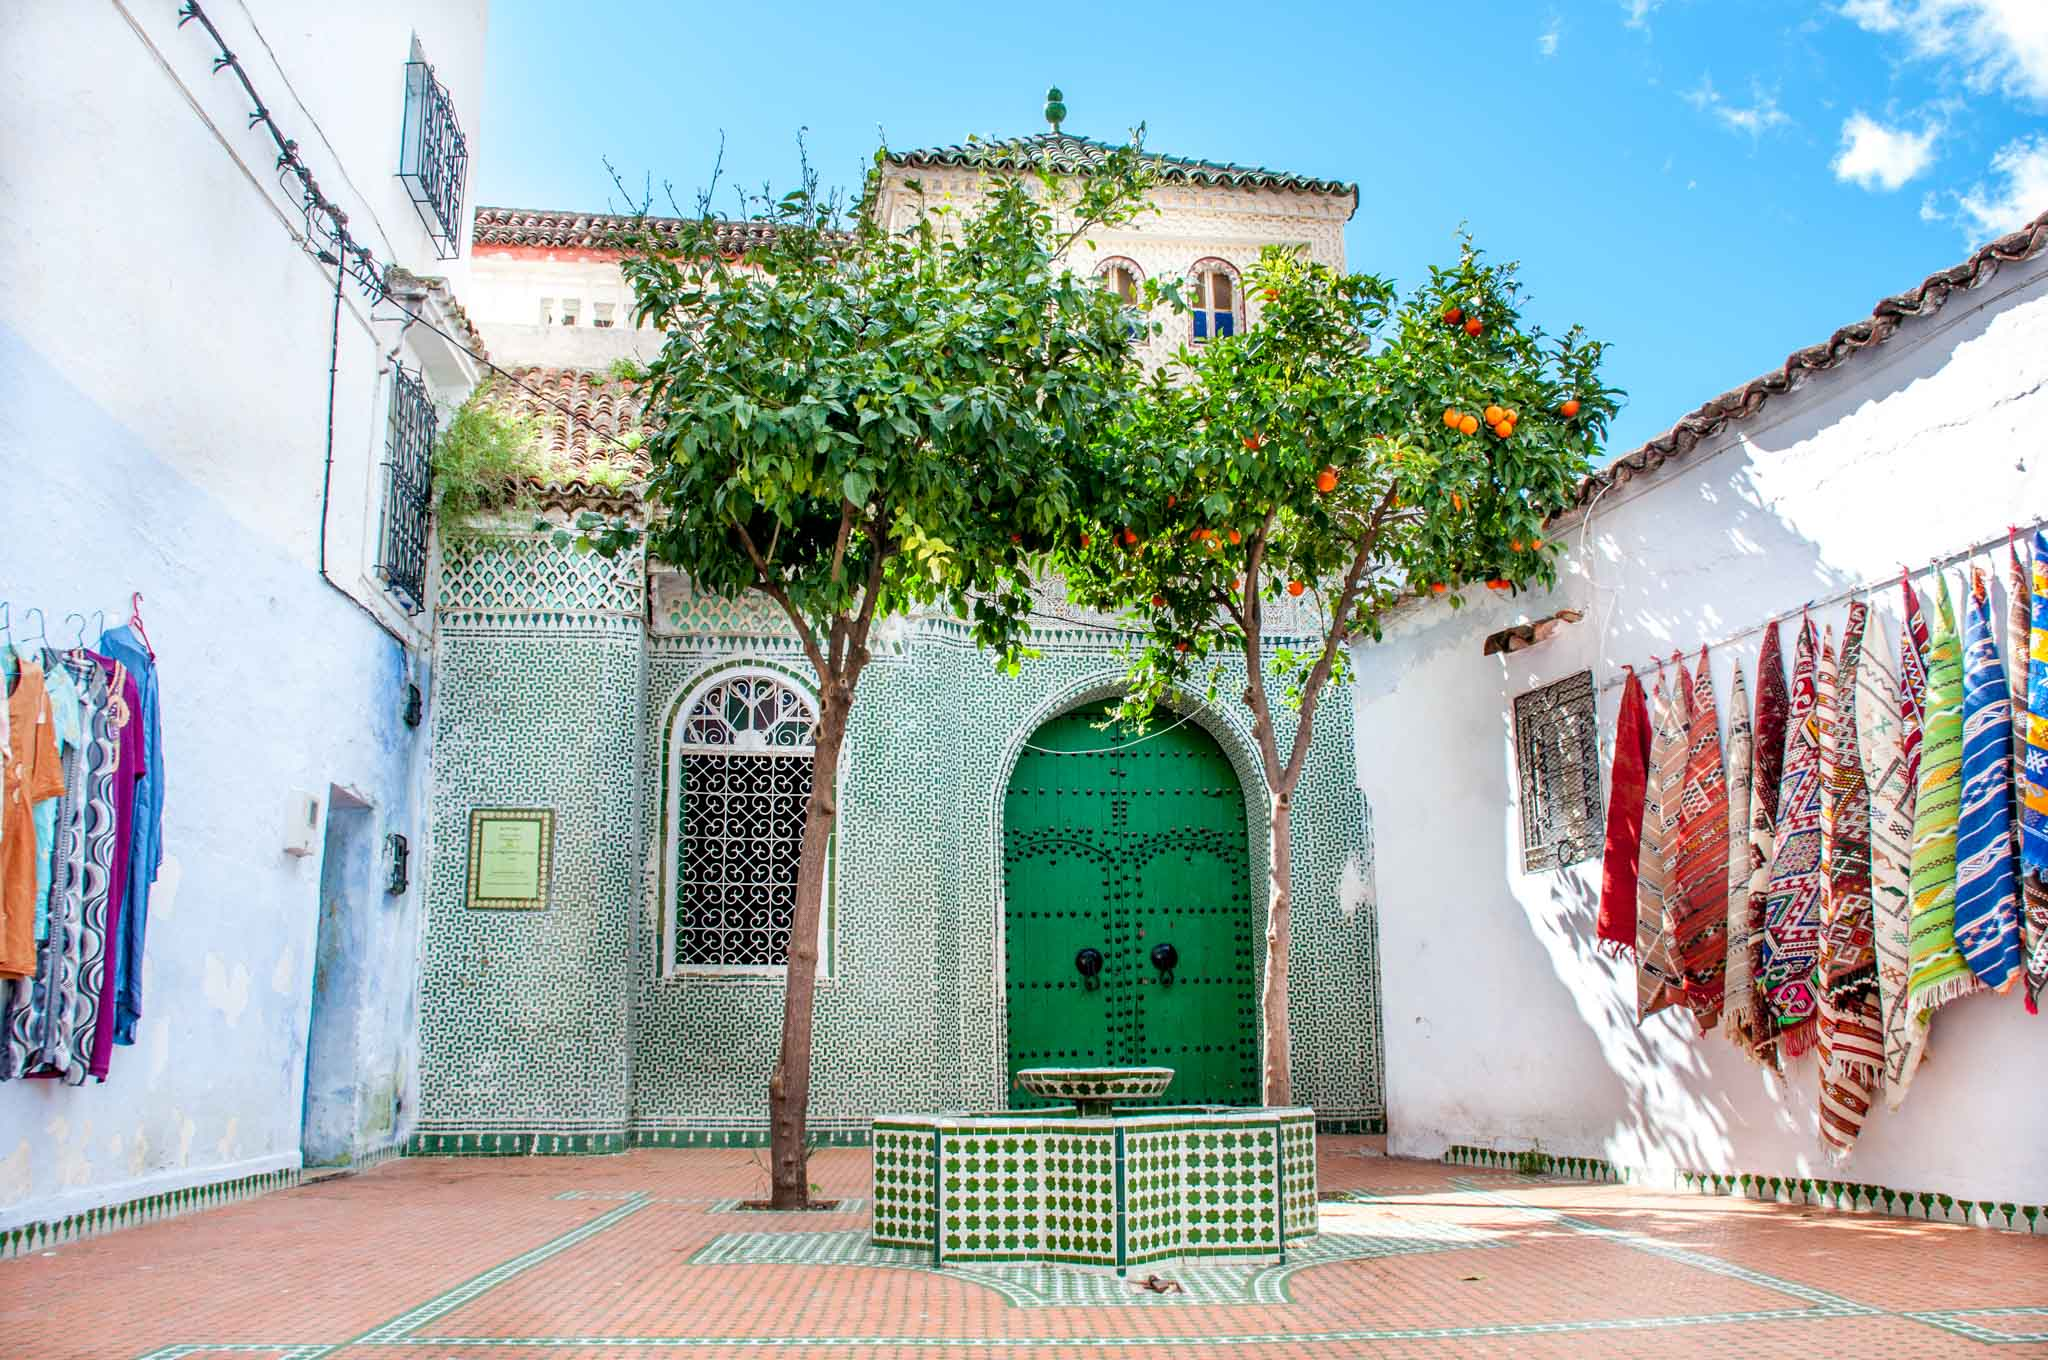 Green courtyard with orange trees